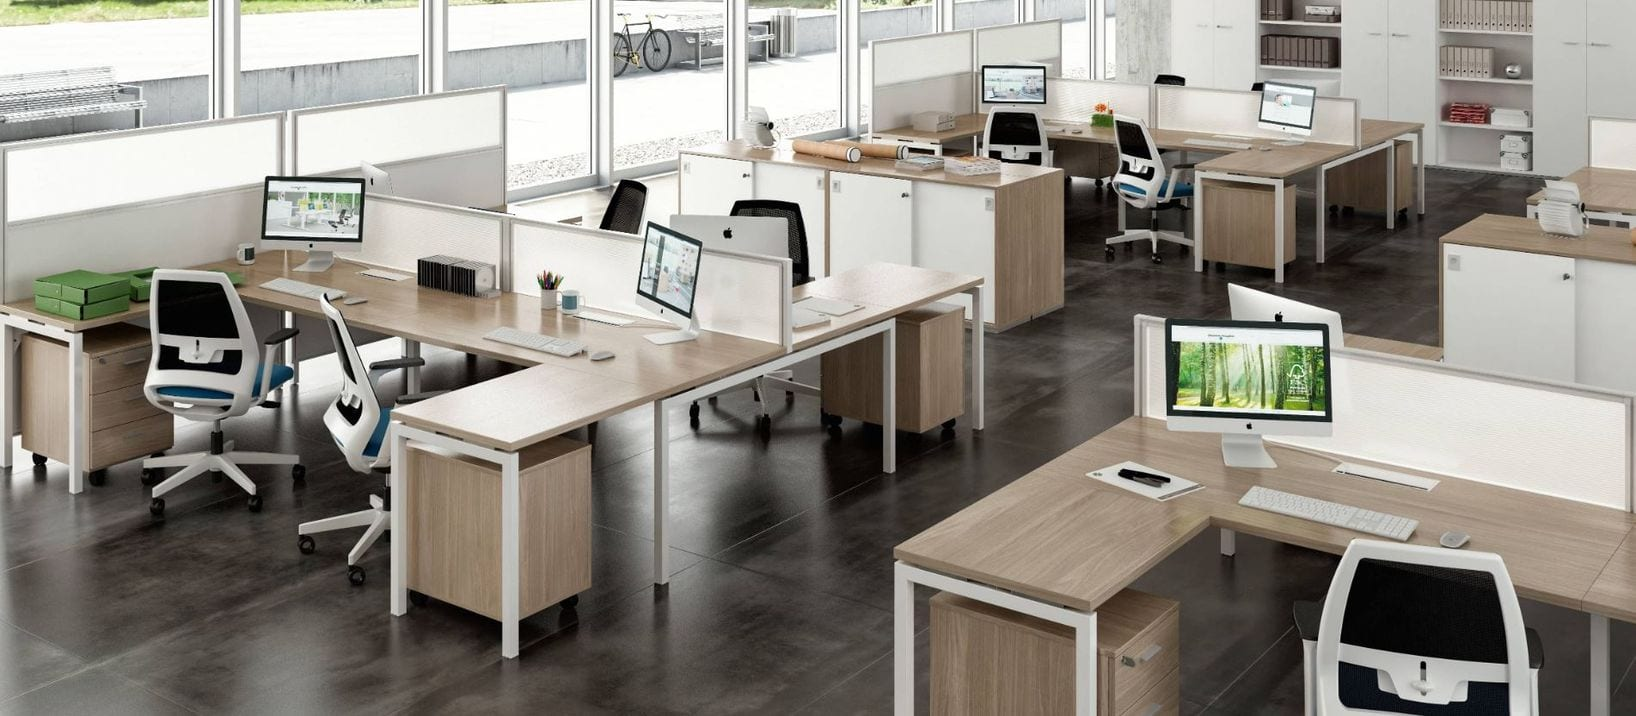 Commercial Office Interior Planning Design Services